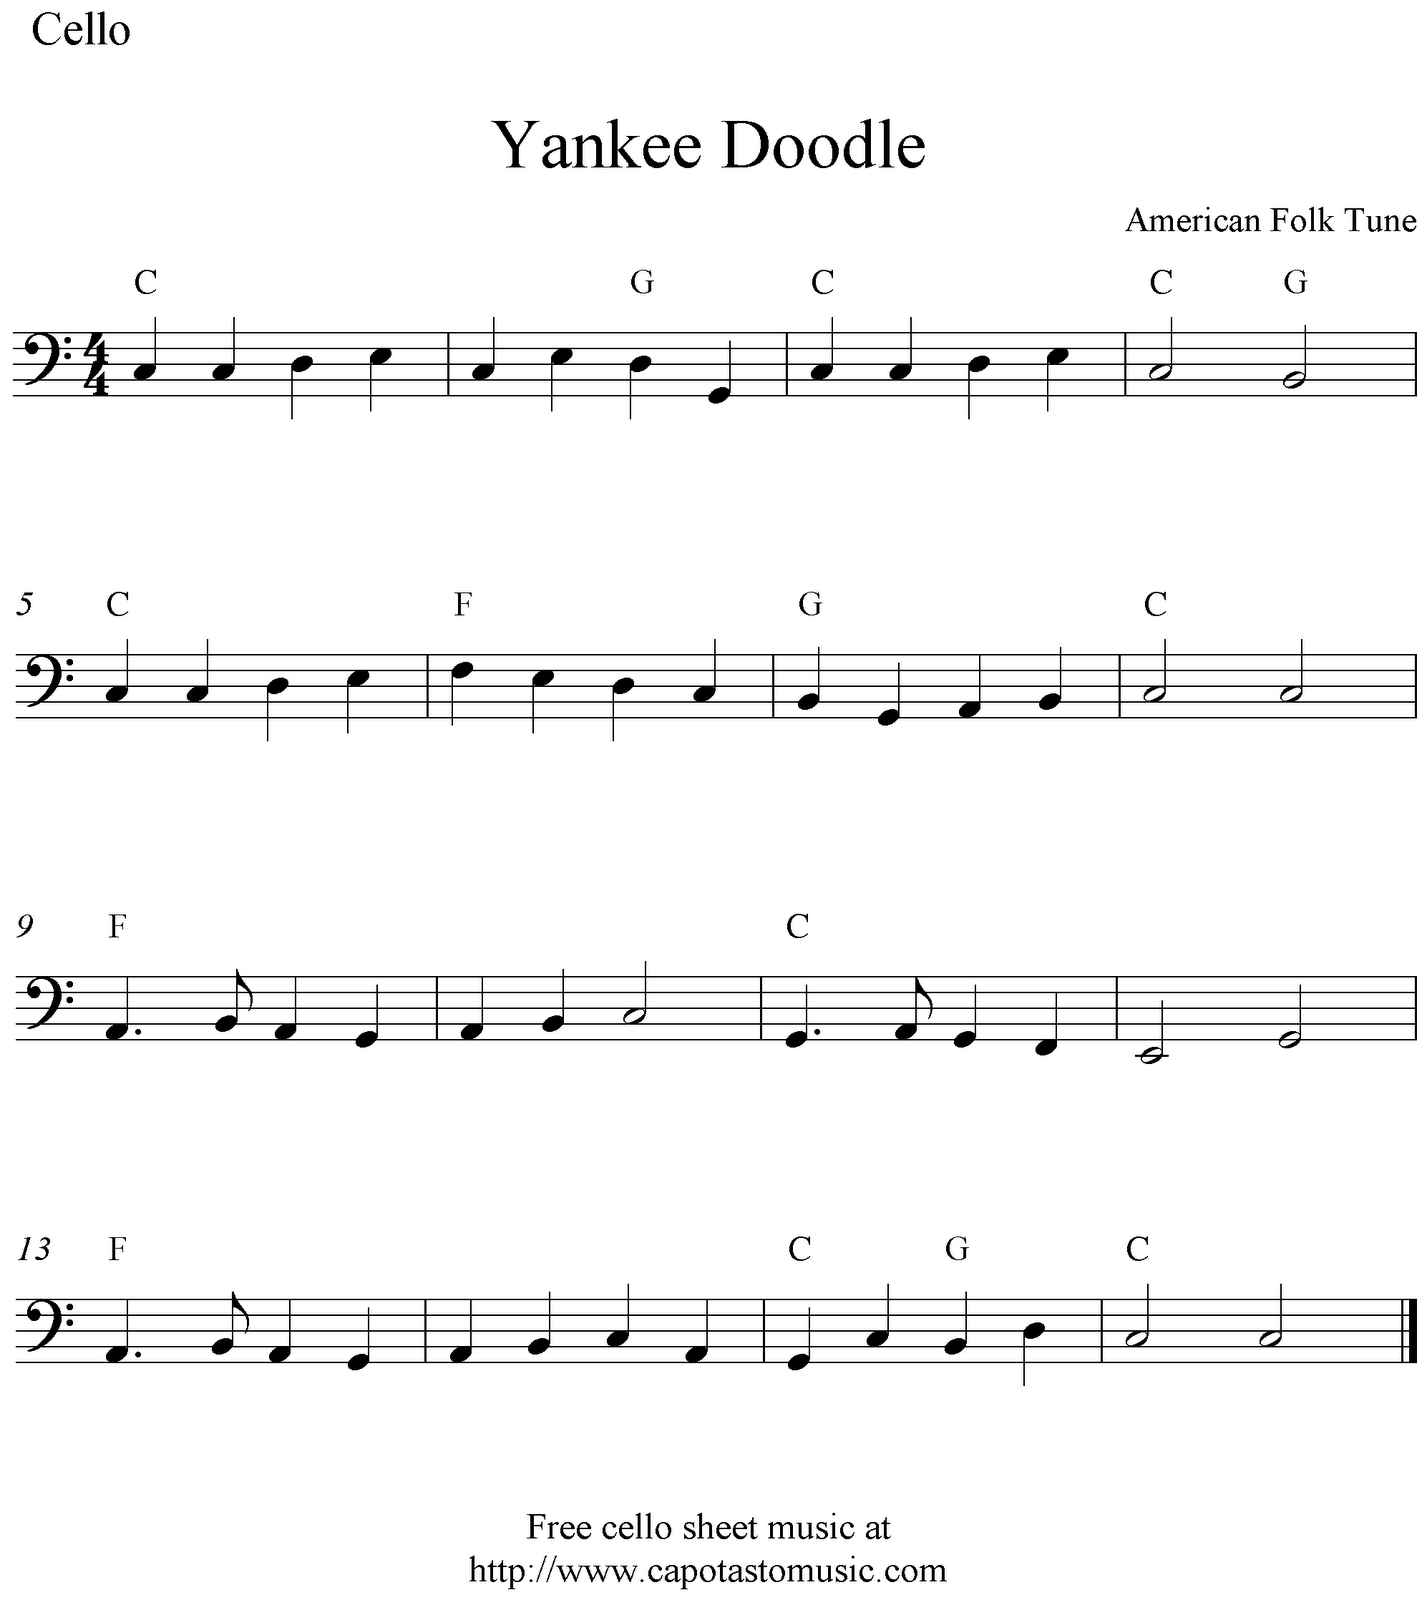 Yankee Doodle, free cello sheet music notes